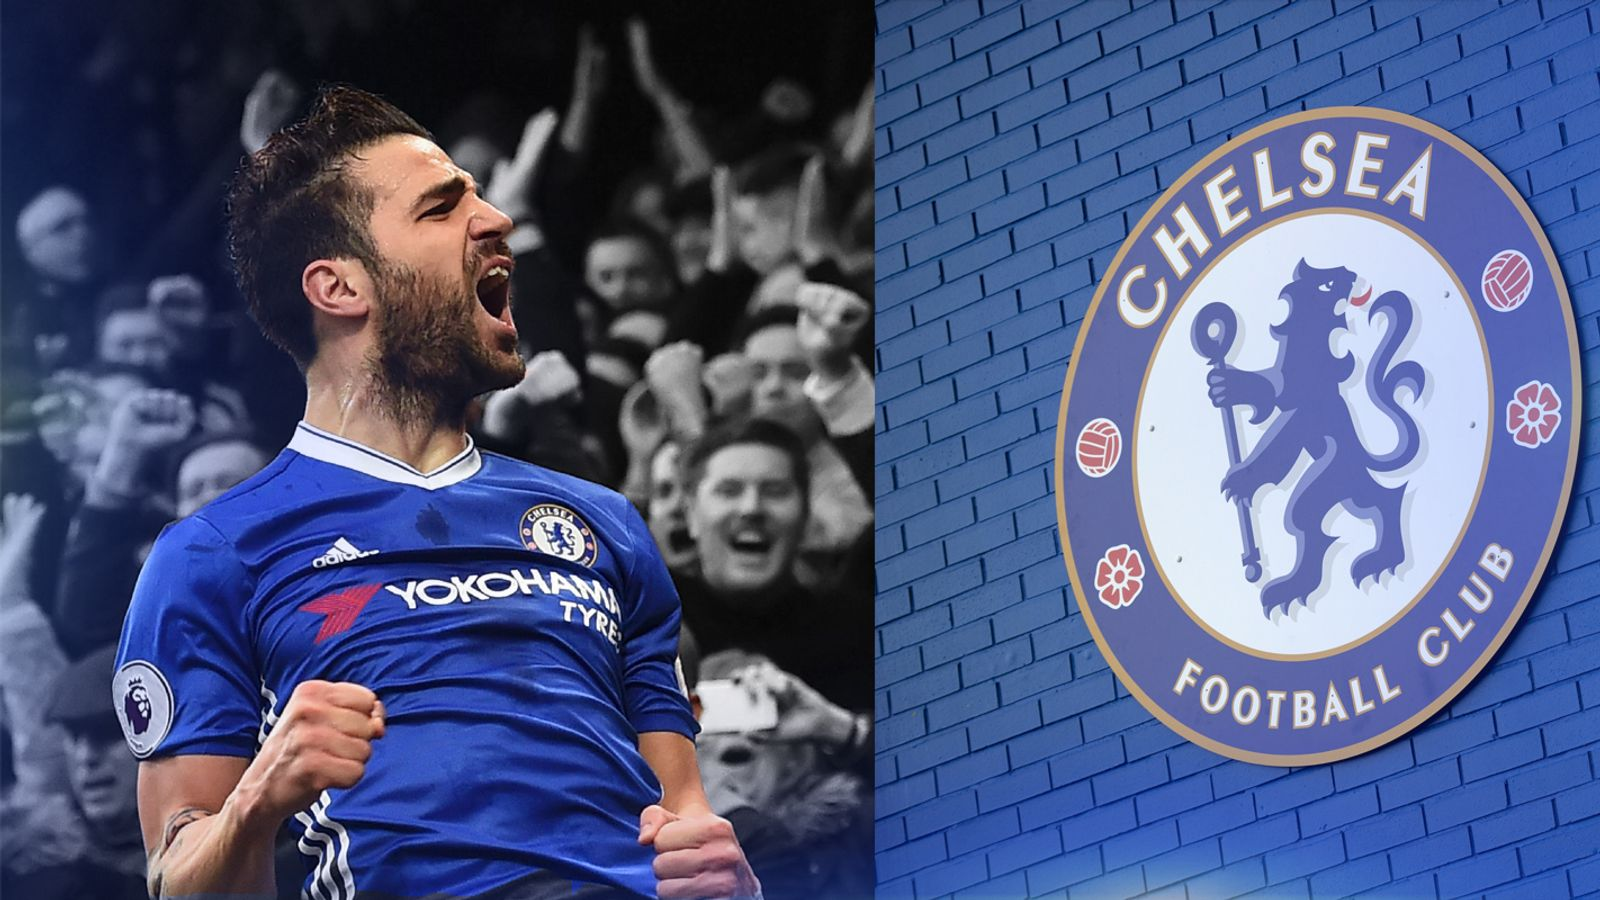 Cesc Fabregas Has A Role At Chelsea: His Quality Still